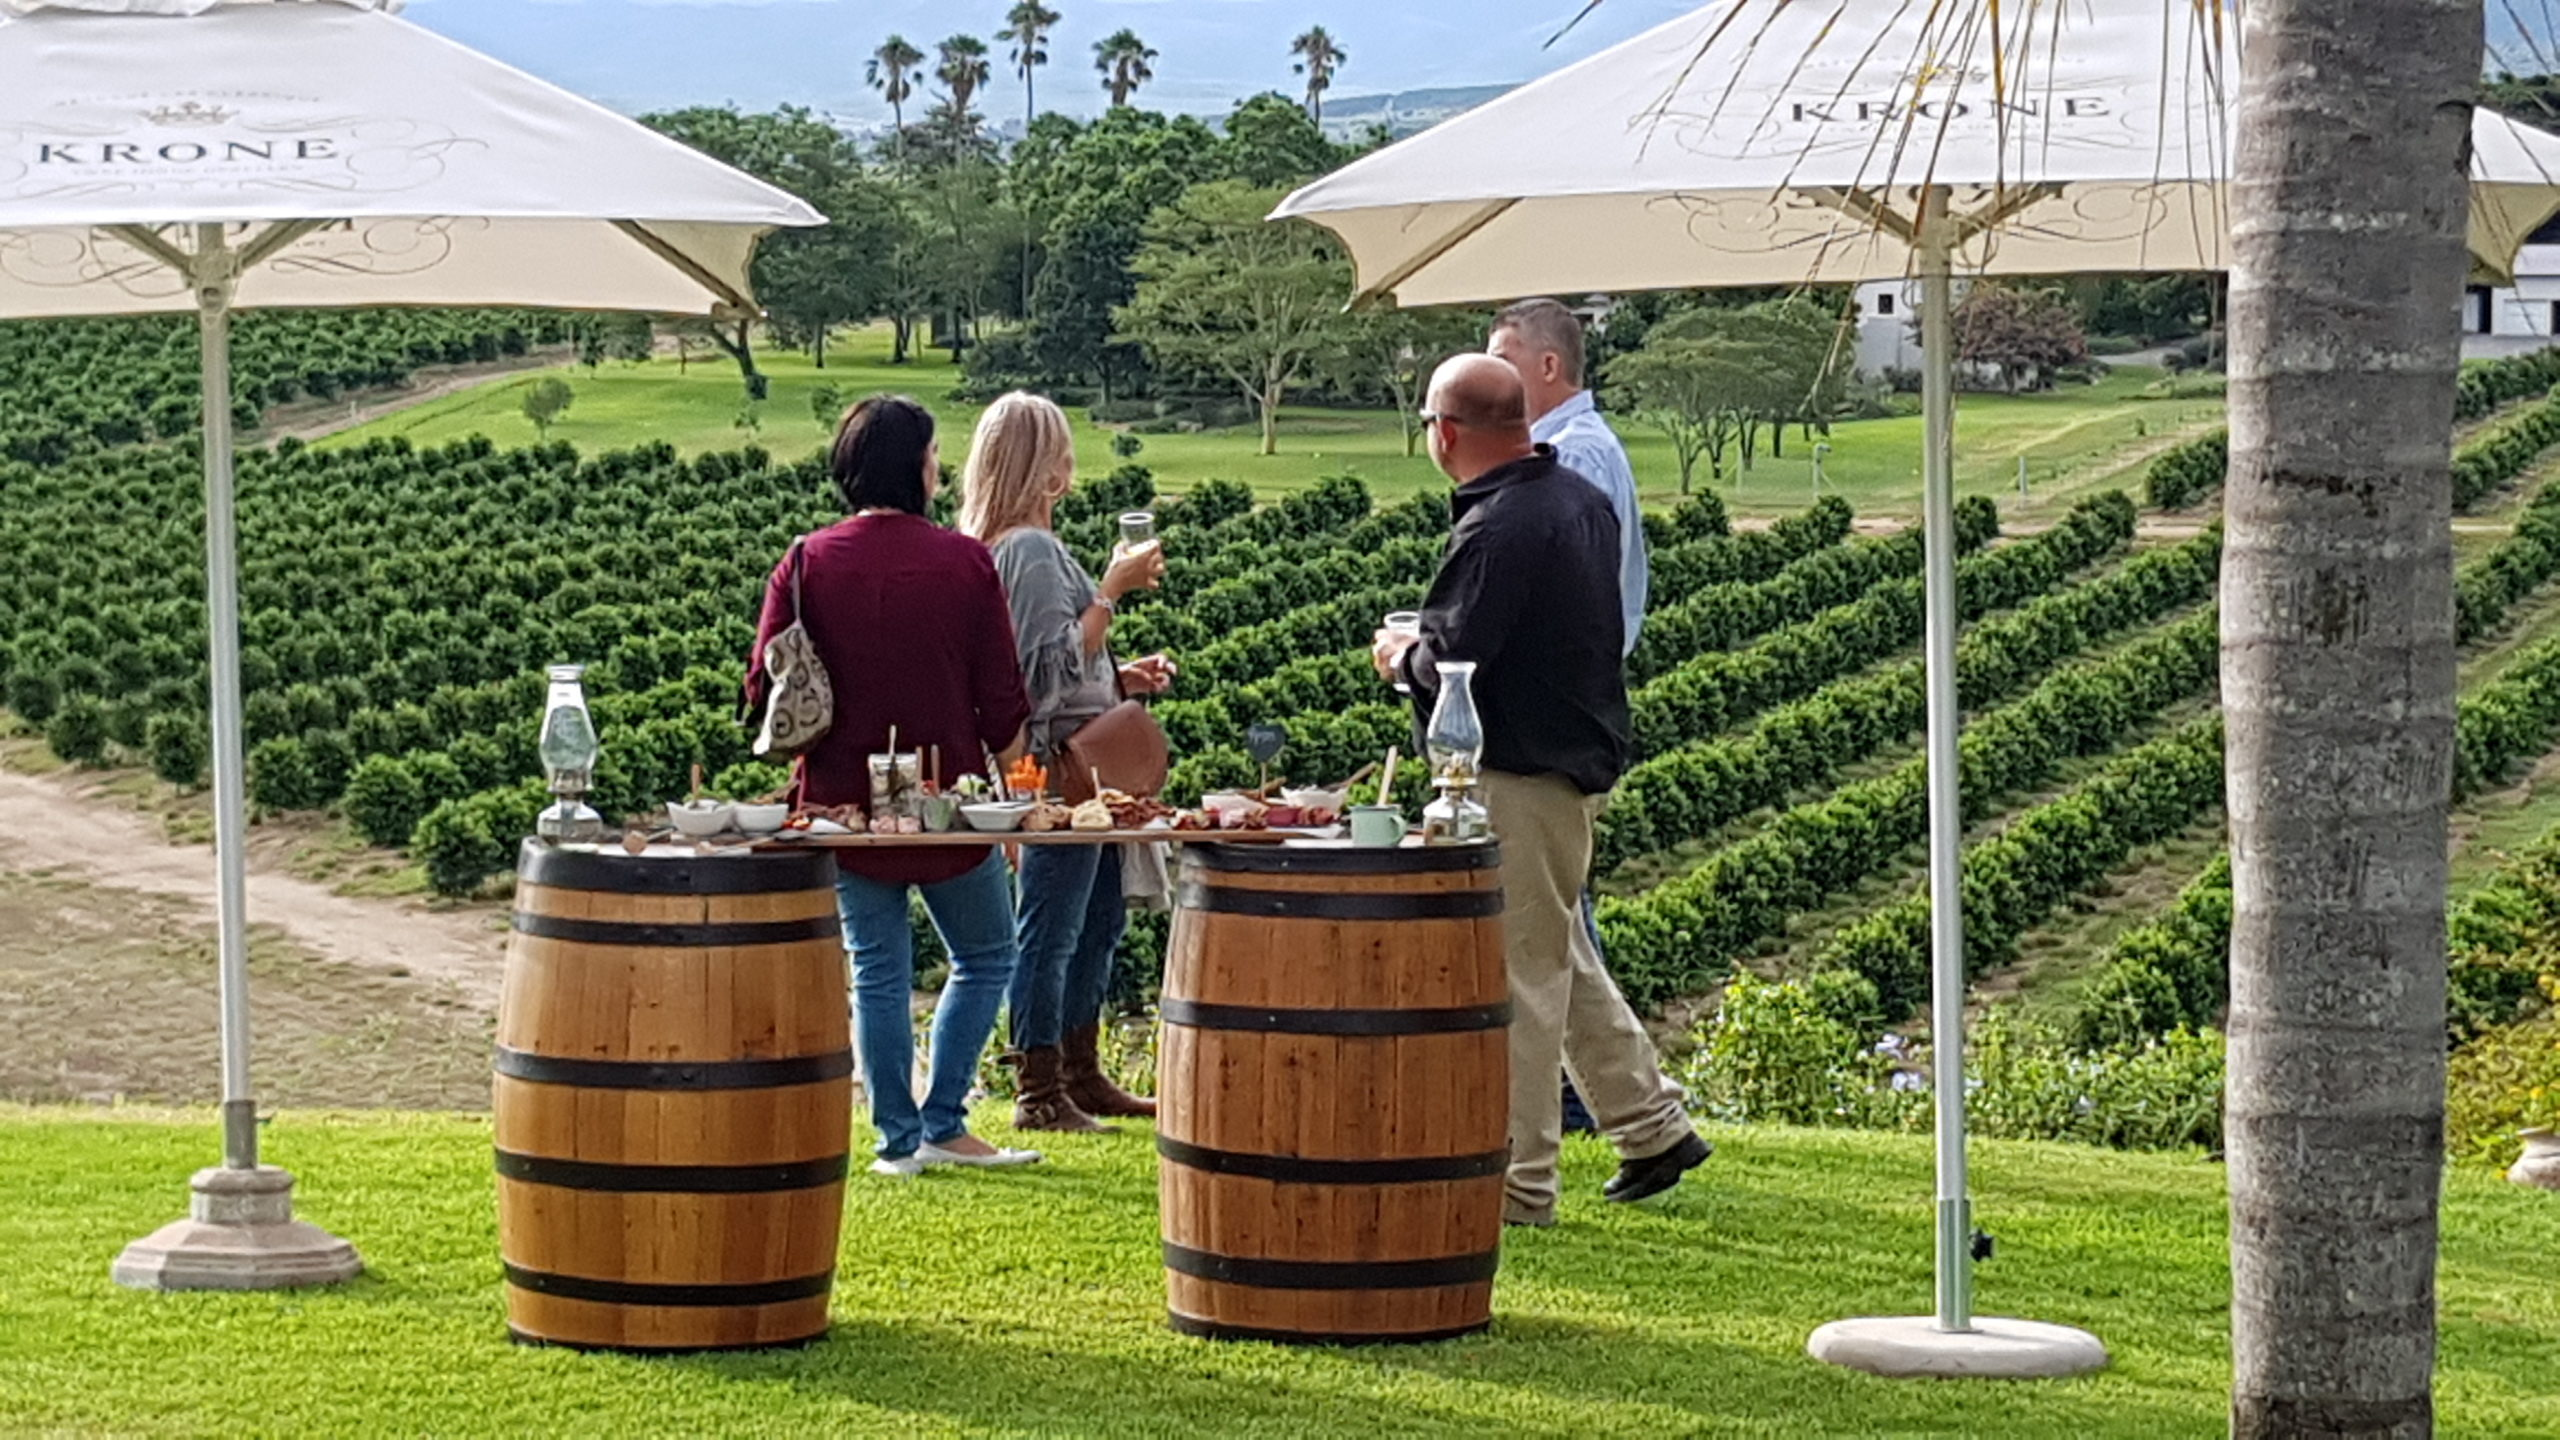 Canapes served on the lawn overlooking the citrus orchards and Zuurberg Mnts